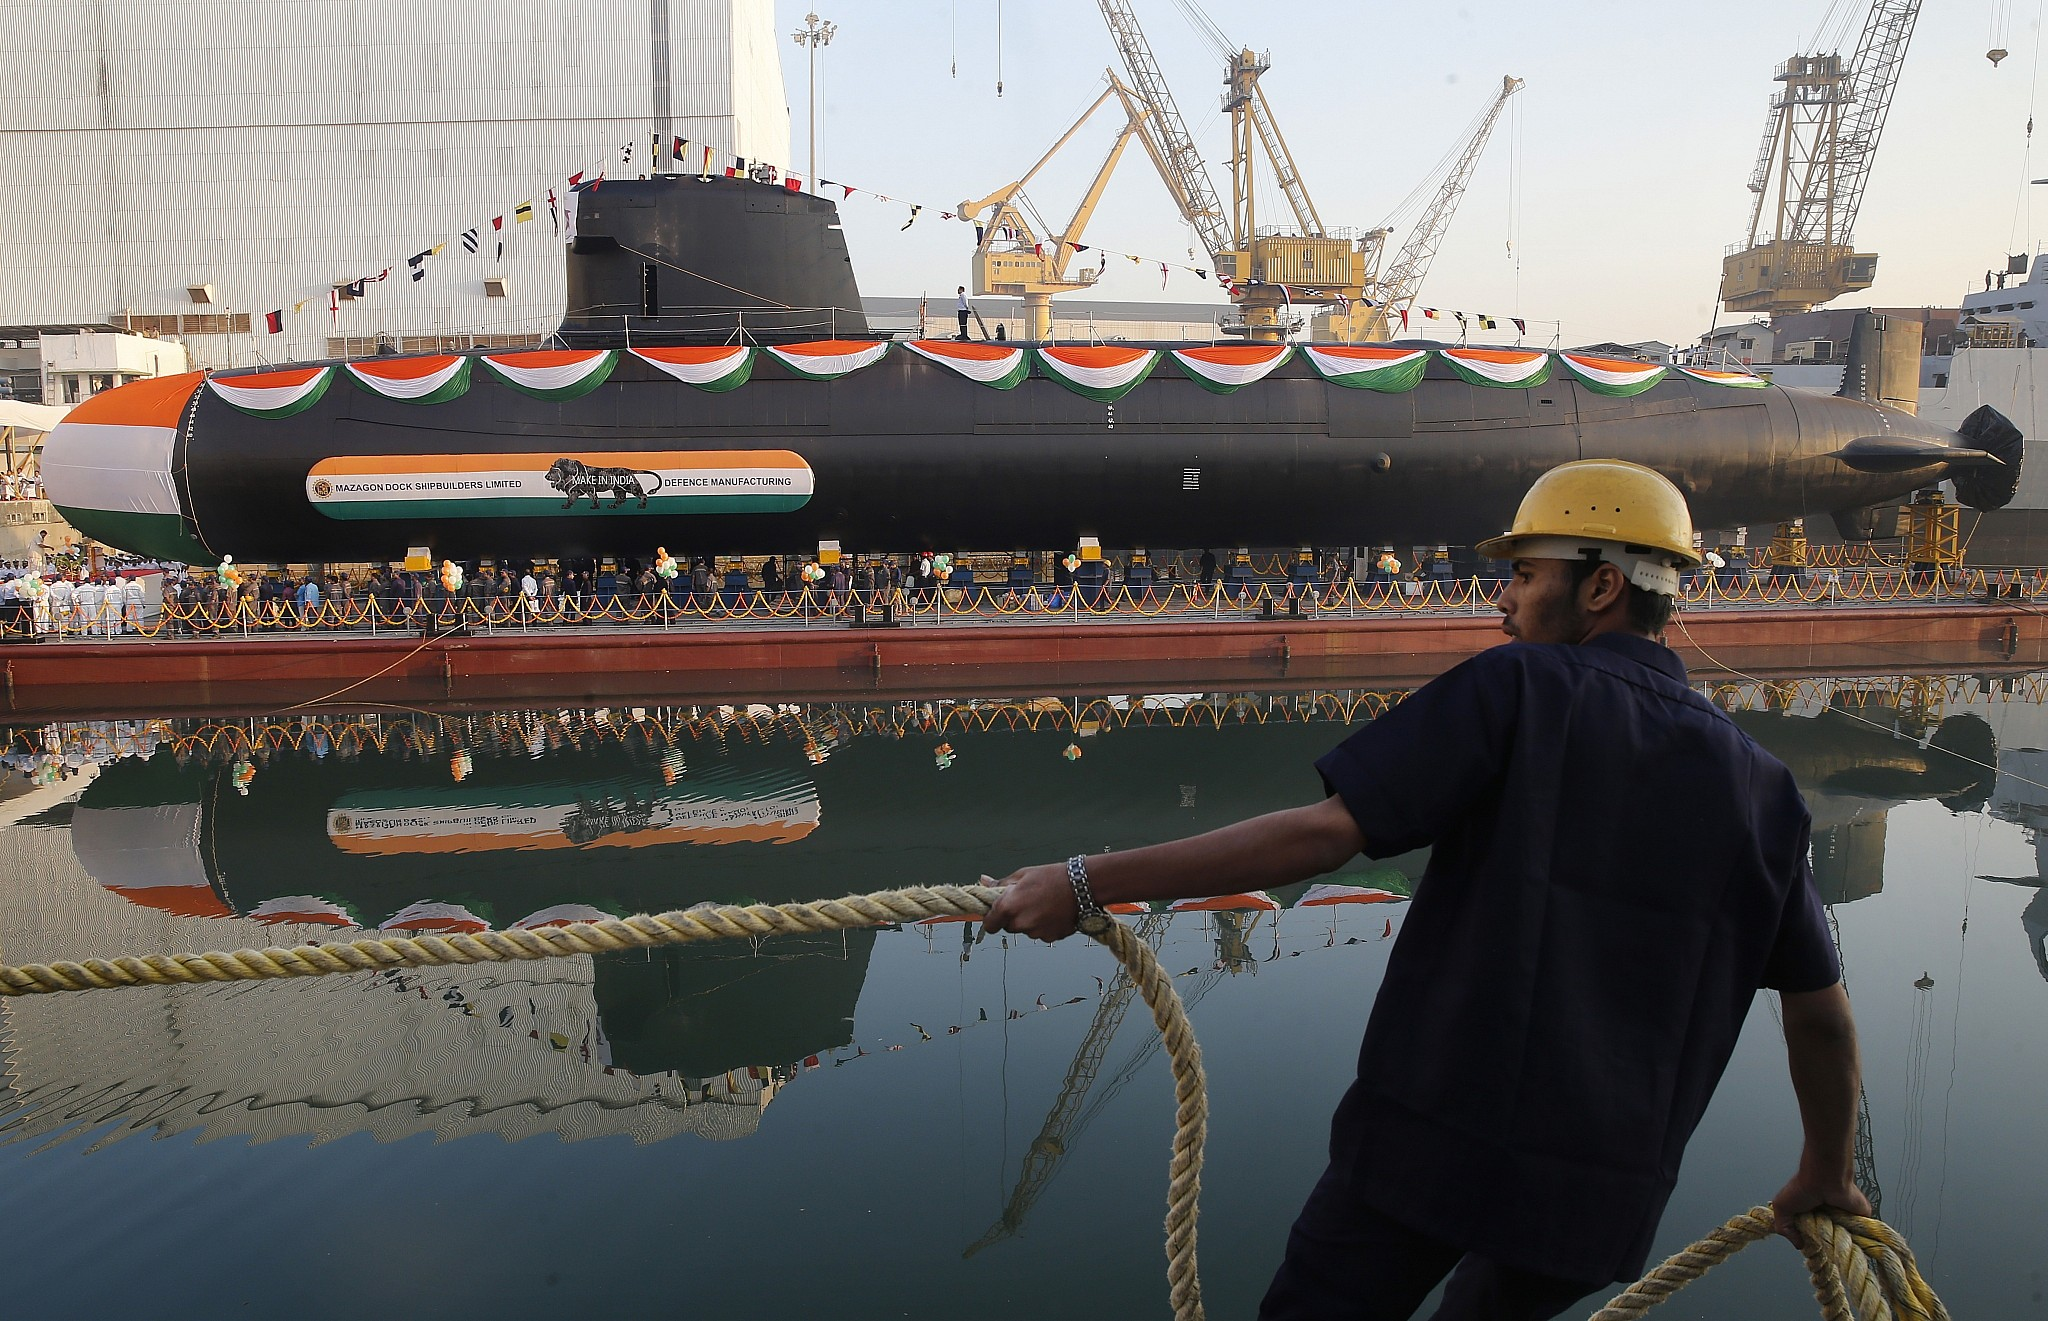 Indian nuclear submarine grounded after hatch left open